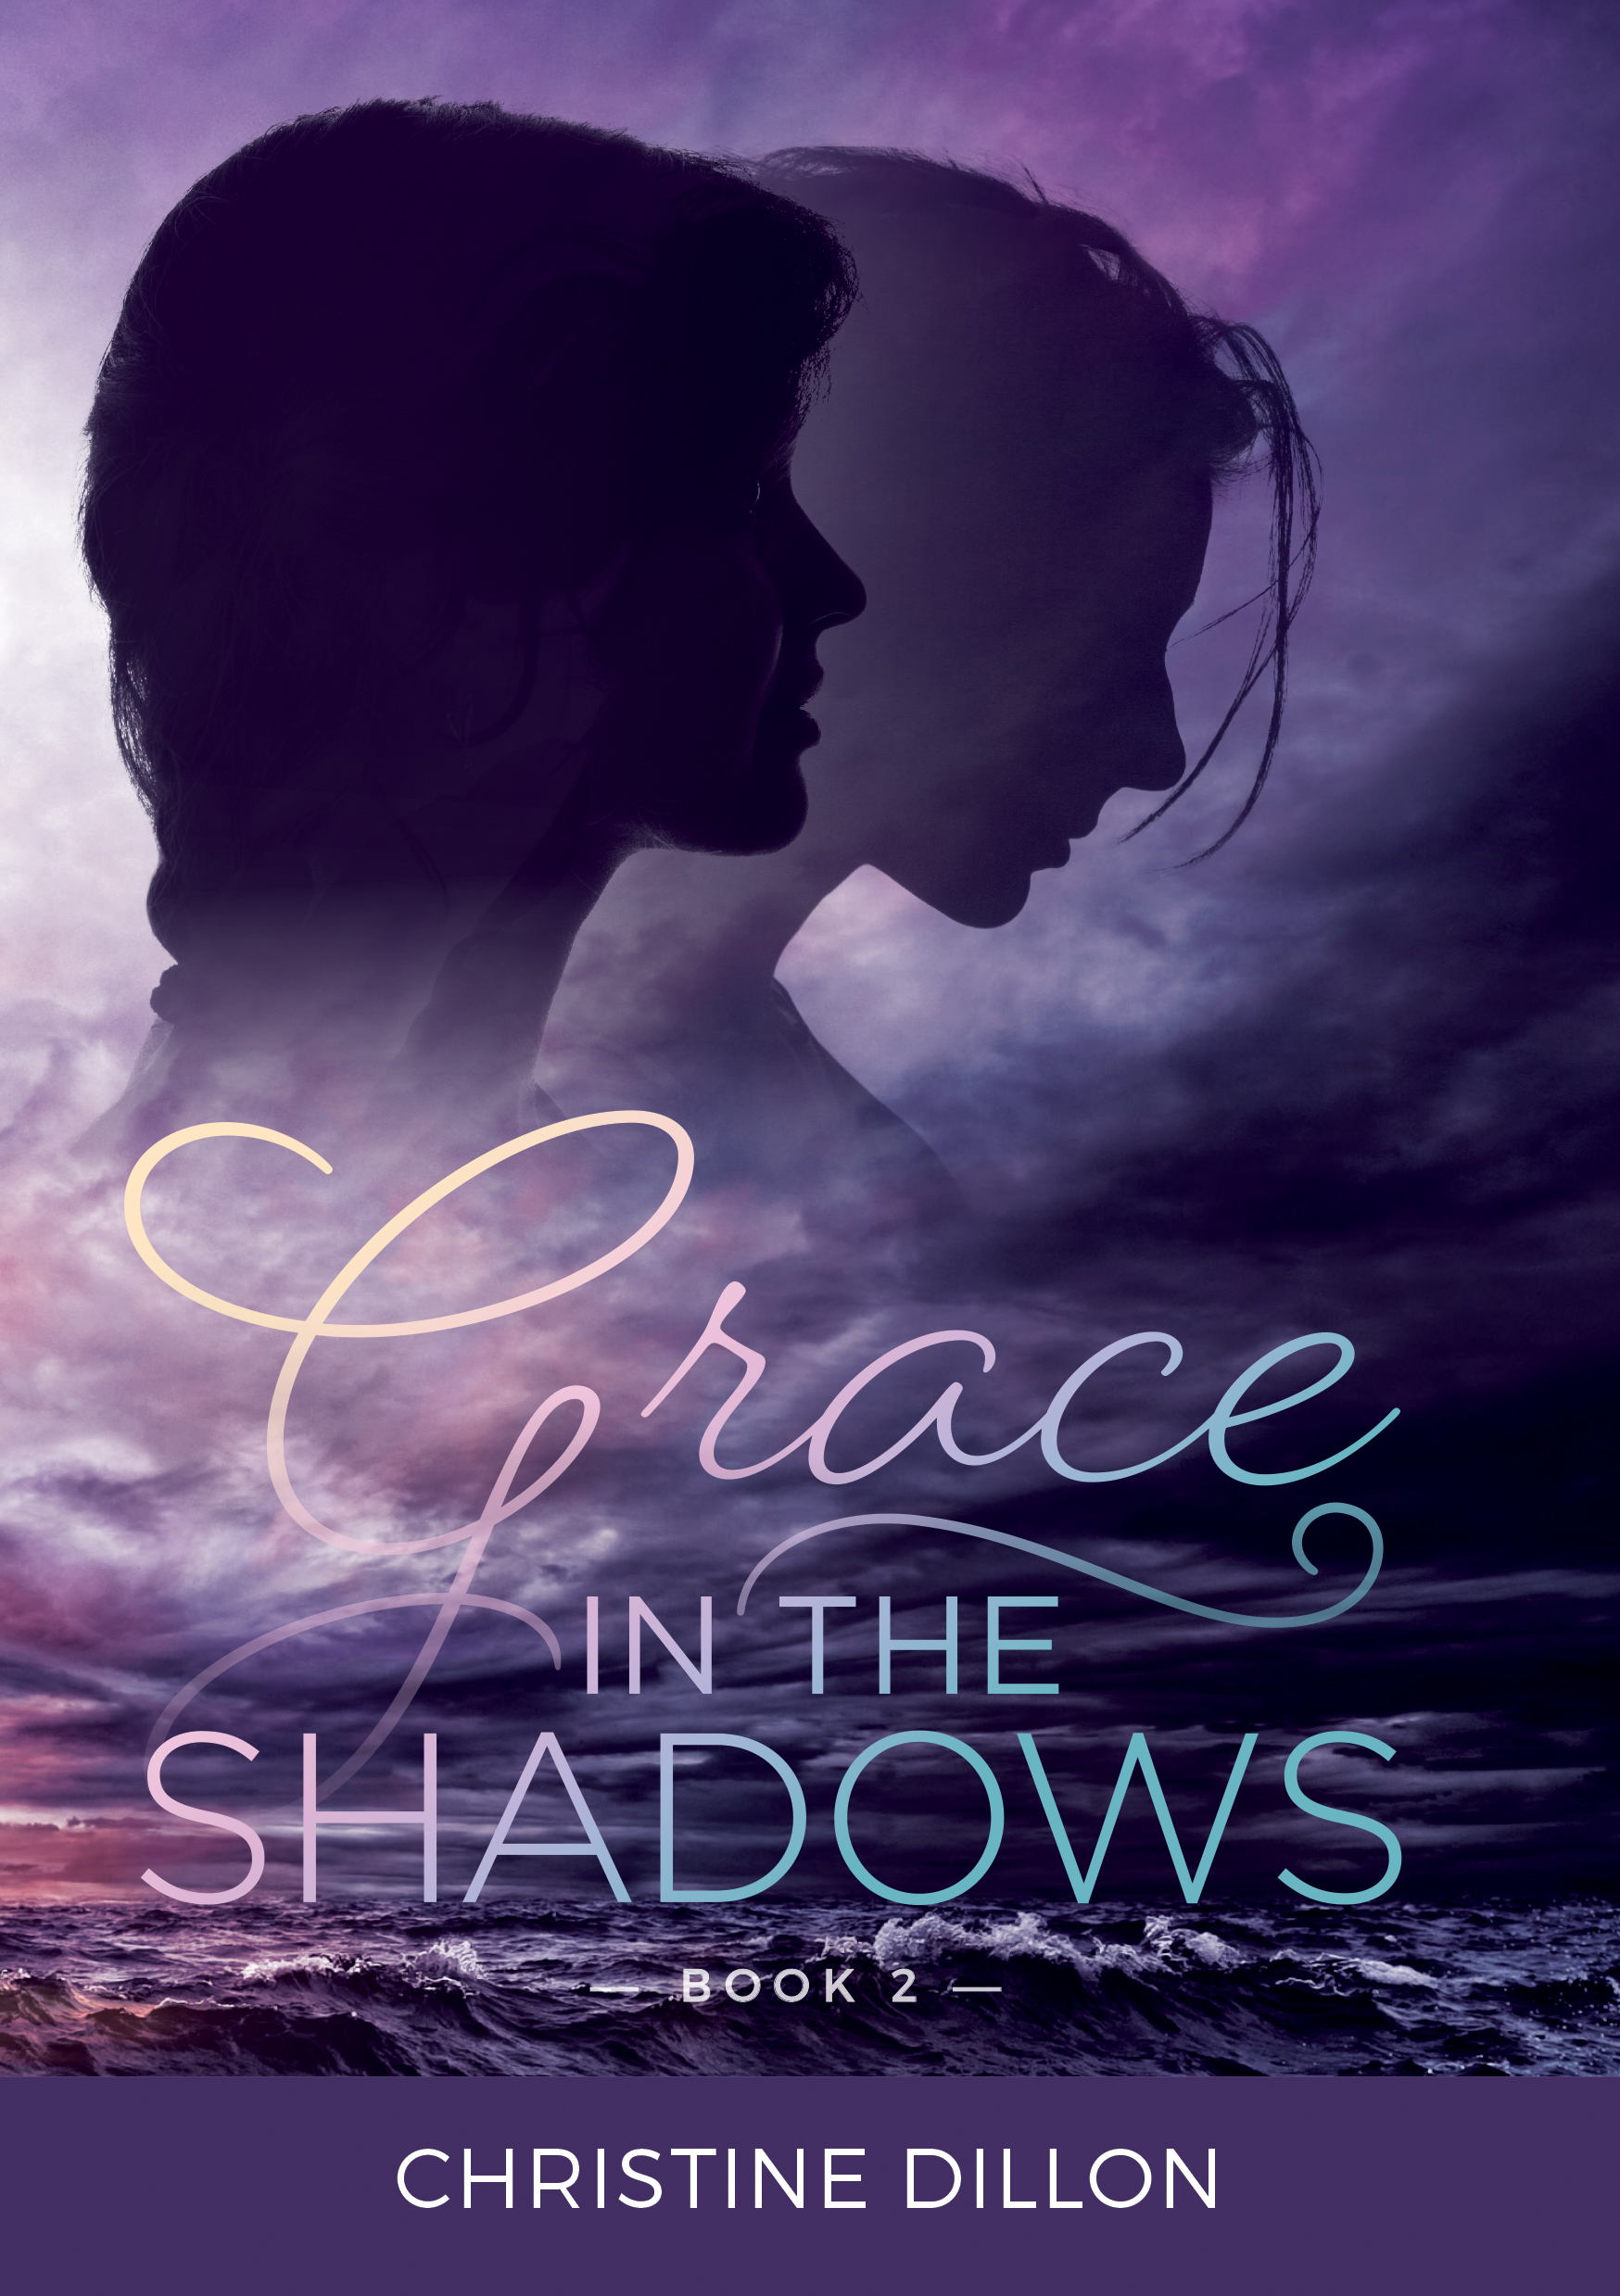 GraceintheShadows-ChristineDillon-MultiplyingDisciplesOneStoryataTime